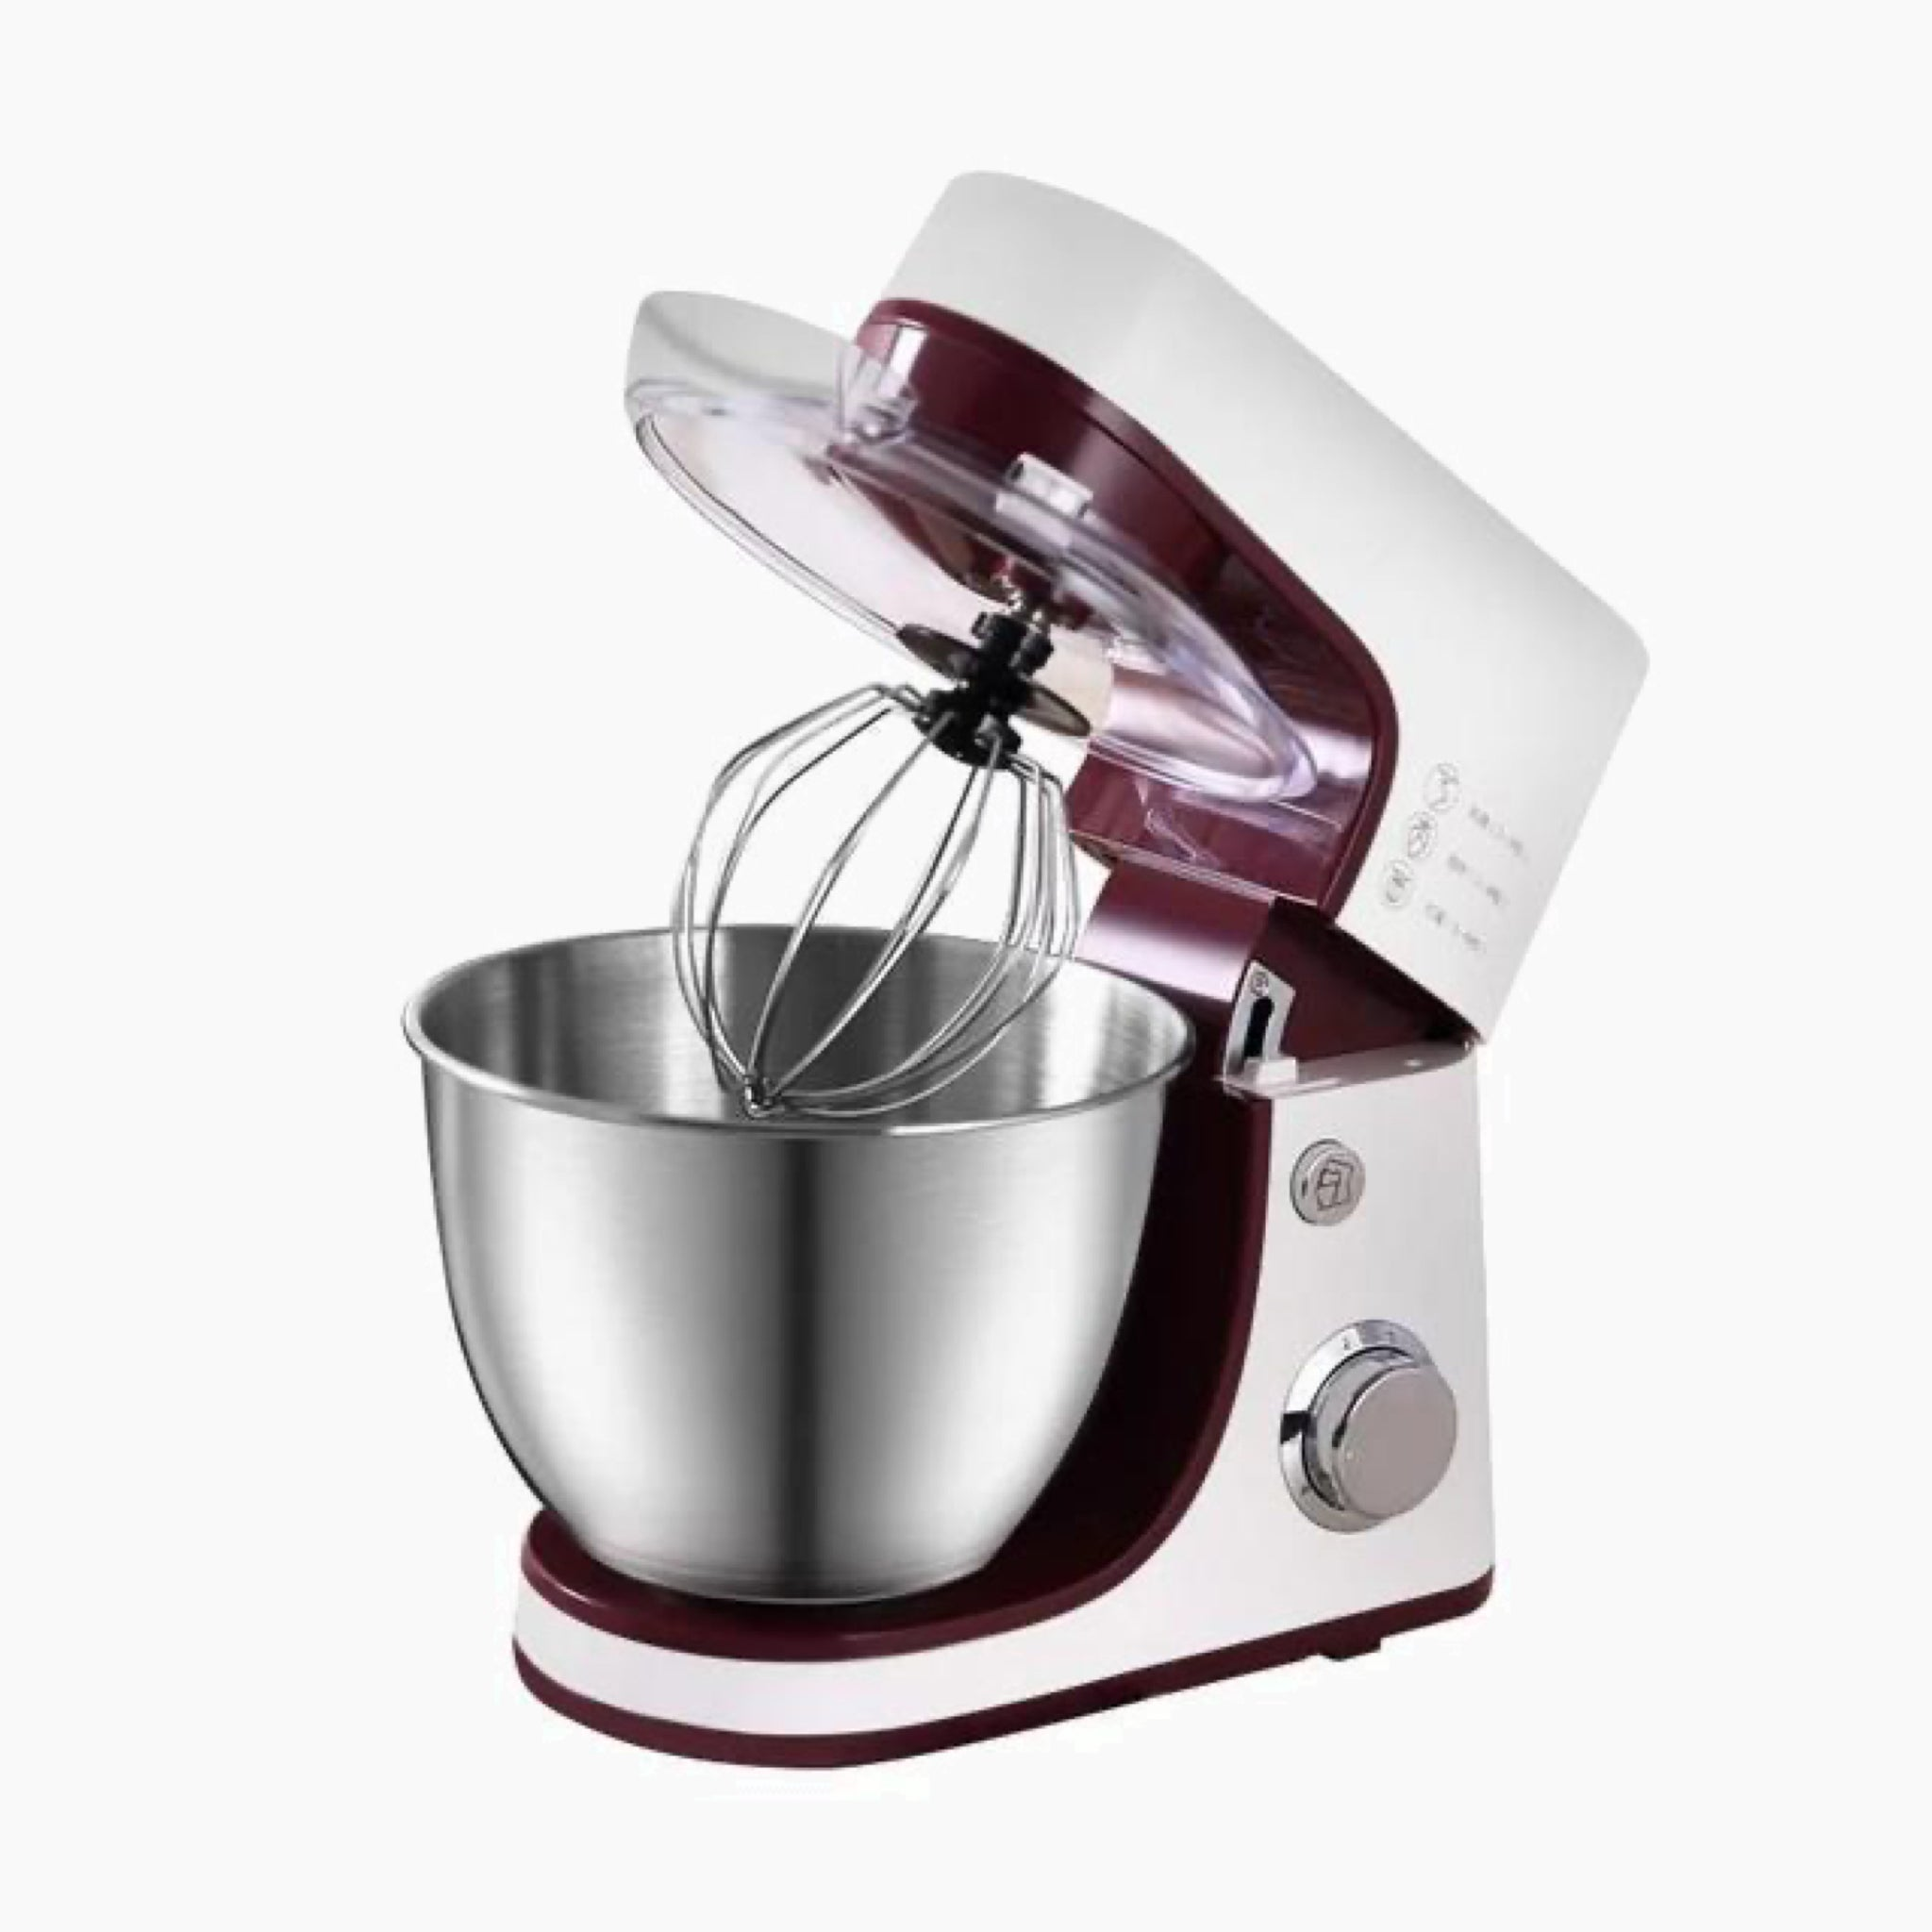 3.5L Stainless Steel Electric Food Mixer Trend